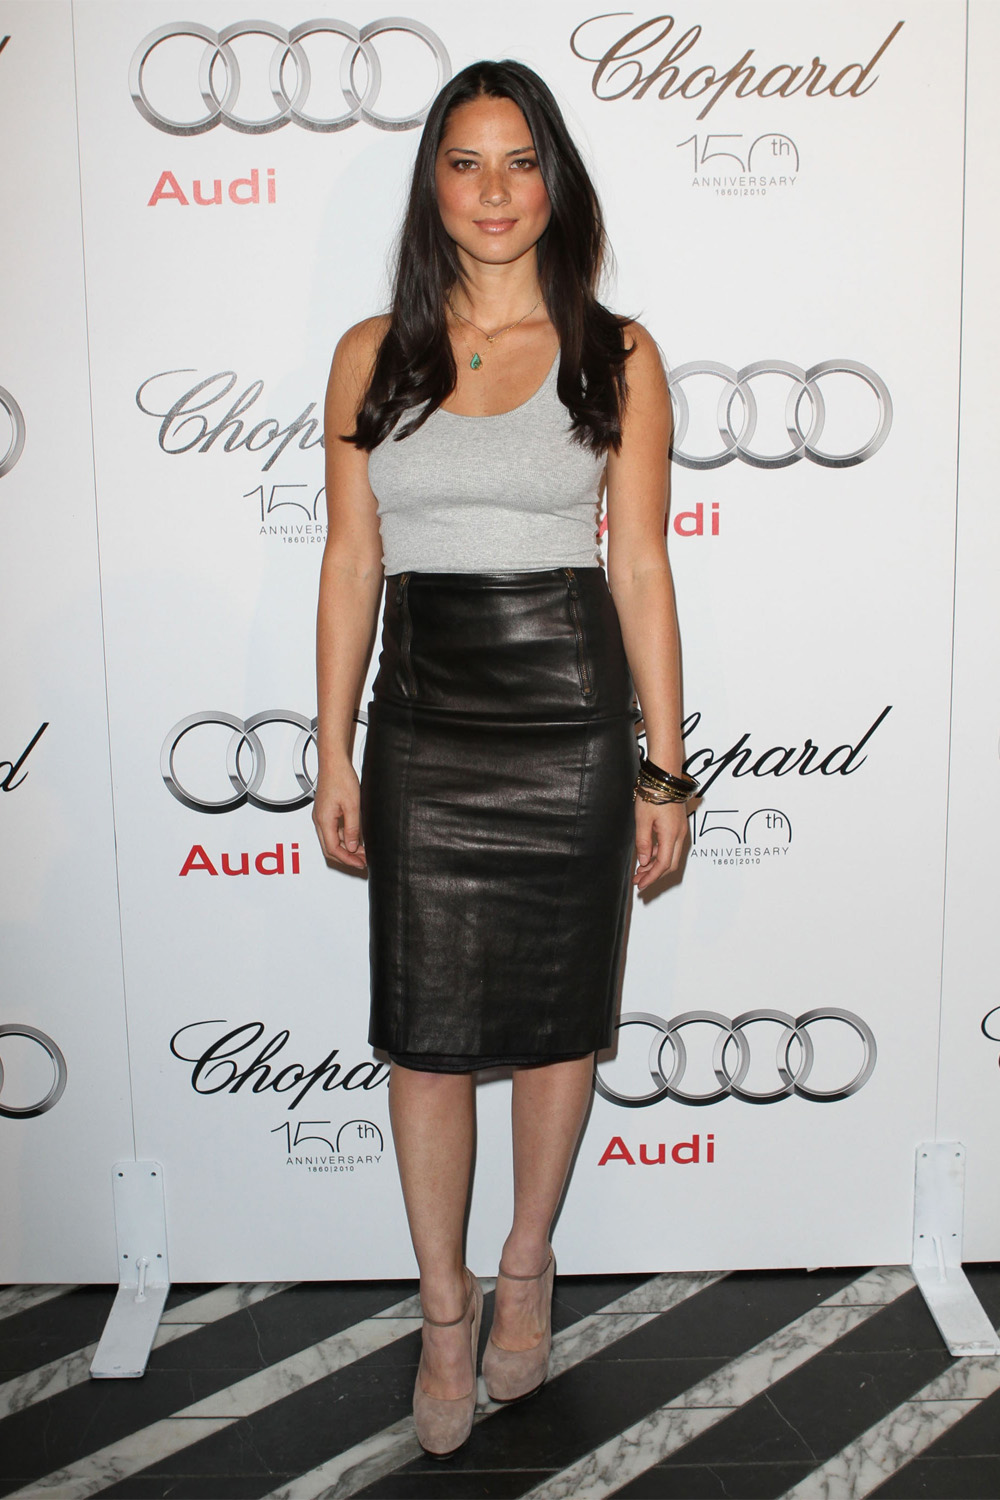 Olivia Munn arrives at the Audi/Chopard EMMY